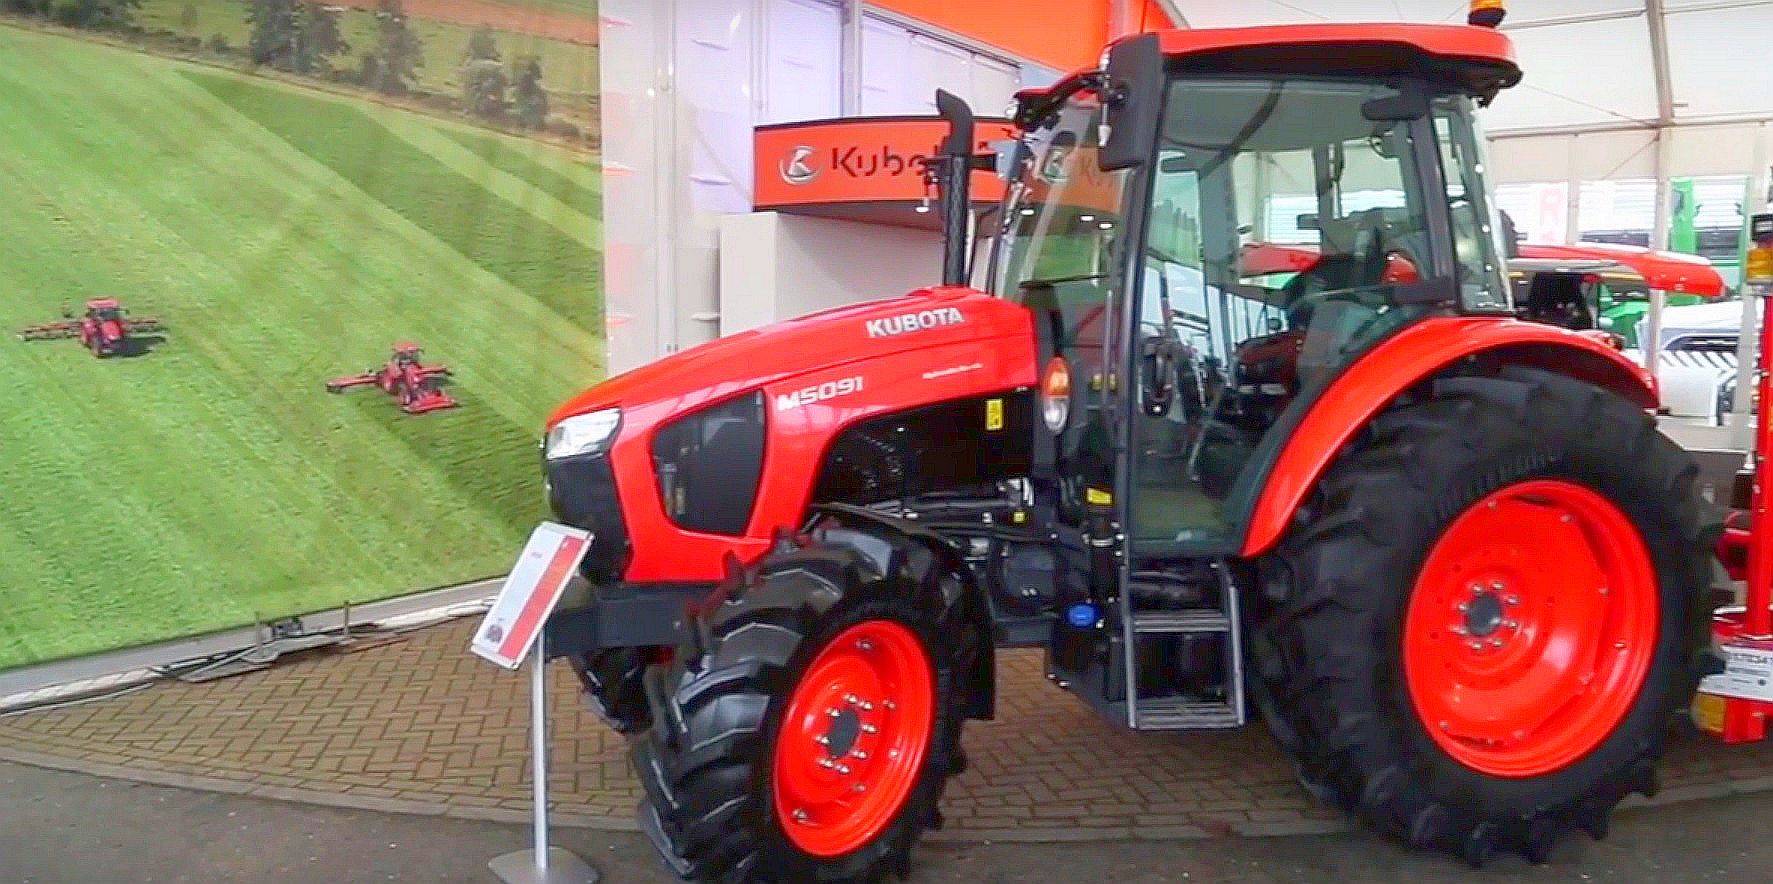 The new M5001 Series, a brand new range of 95HP to 113HP tractors, at Kubota's LAMMA 2017 stand